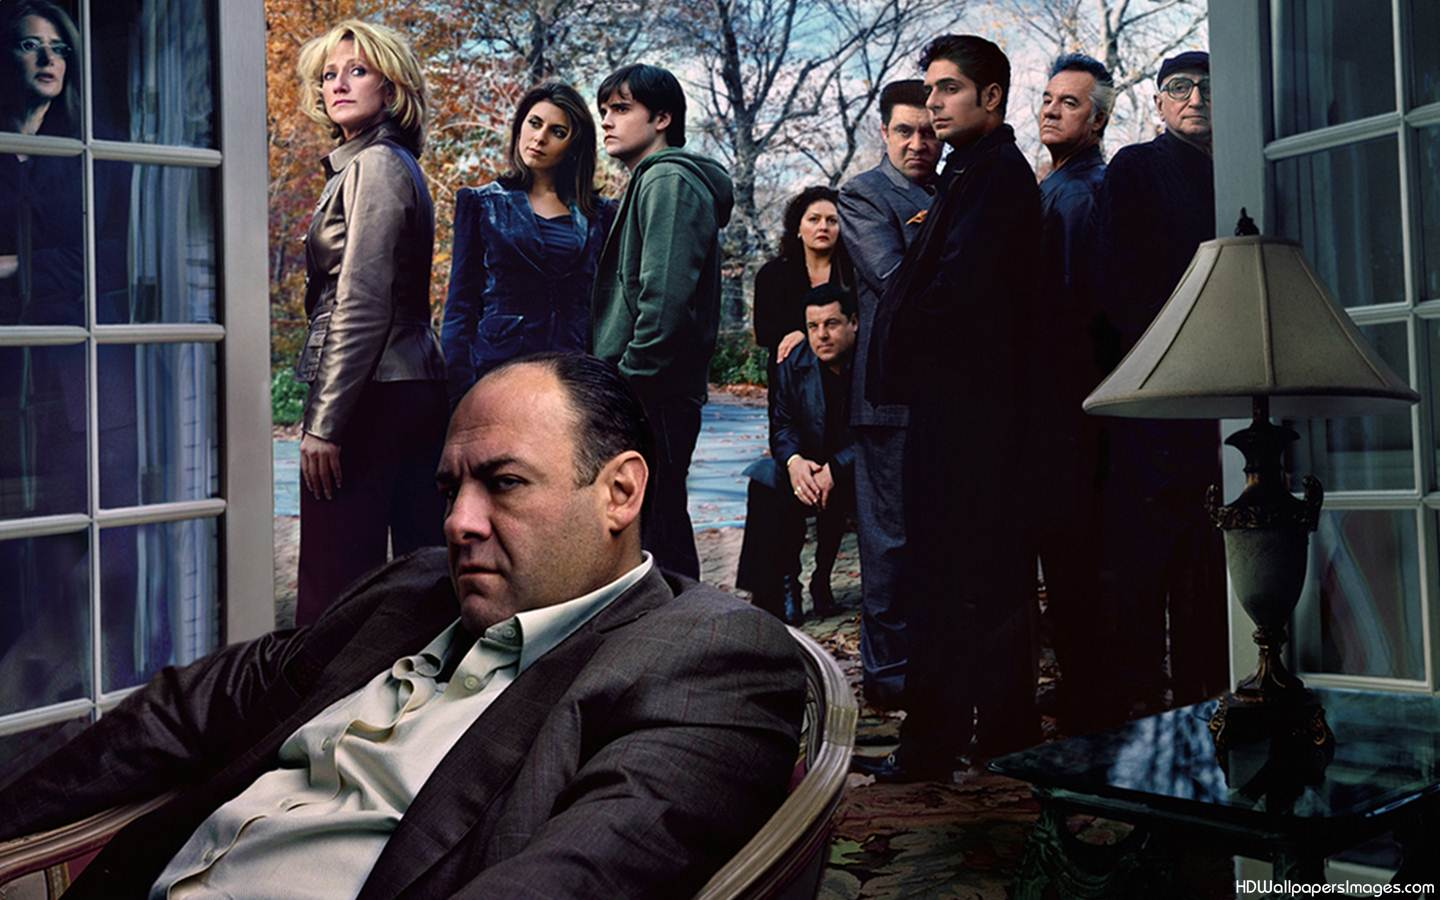 playbuzz.com||http://www.playbuzz.com/lynnejohnson10/how-well-do-know-the-sopranos